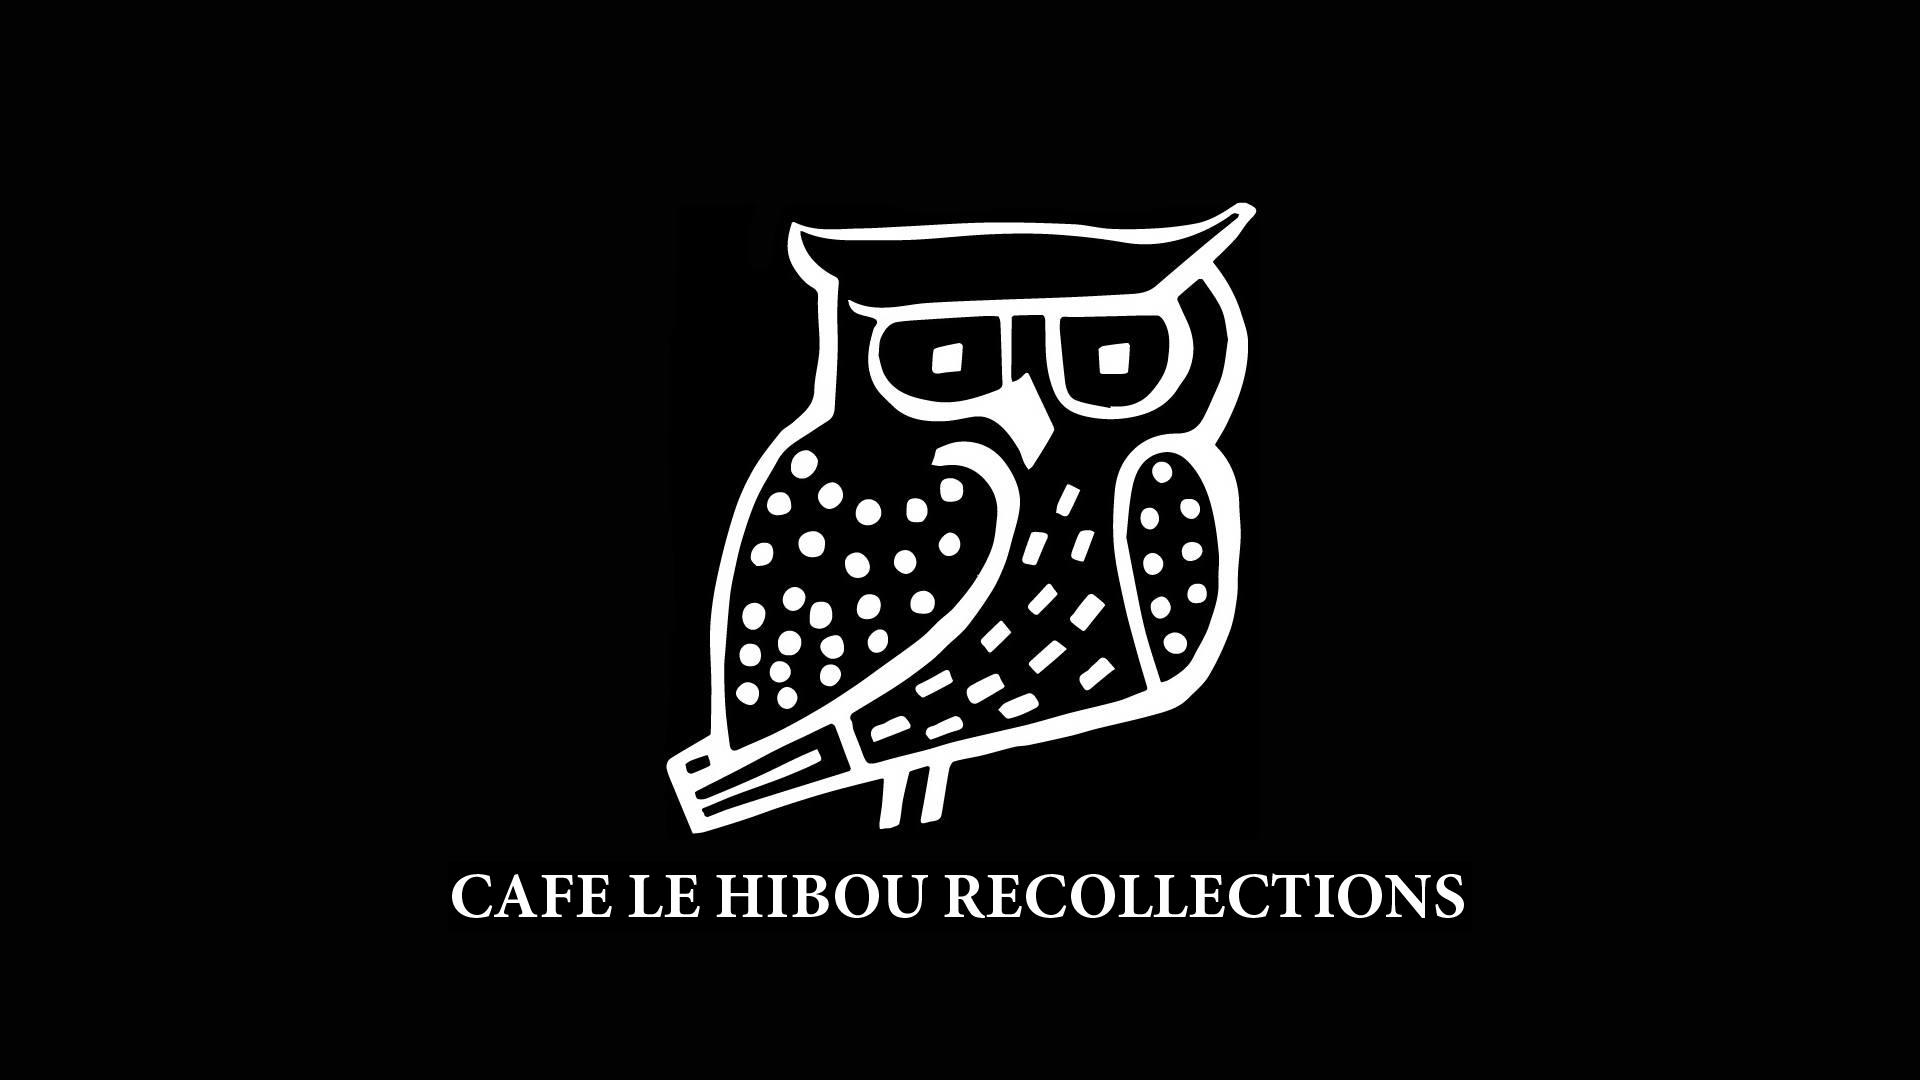 Click to enter Cafe Le Hibou Recollections